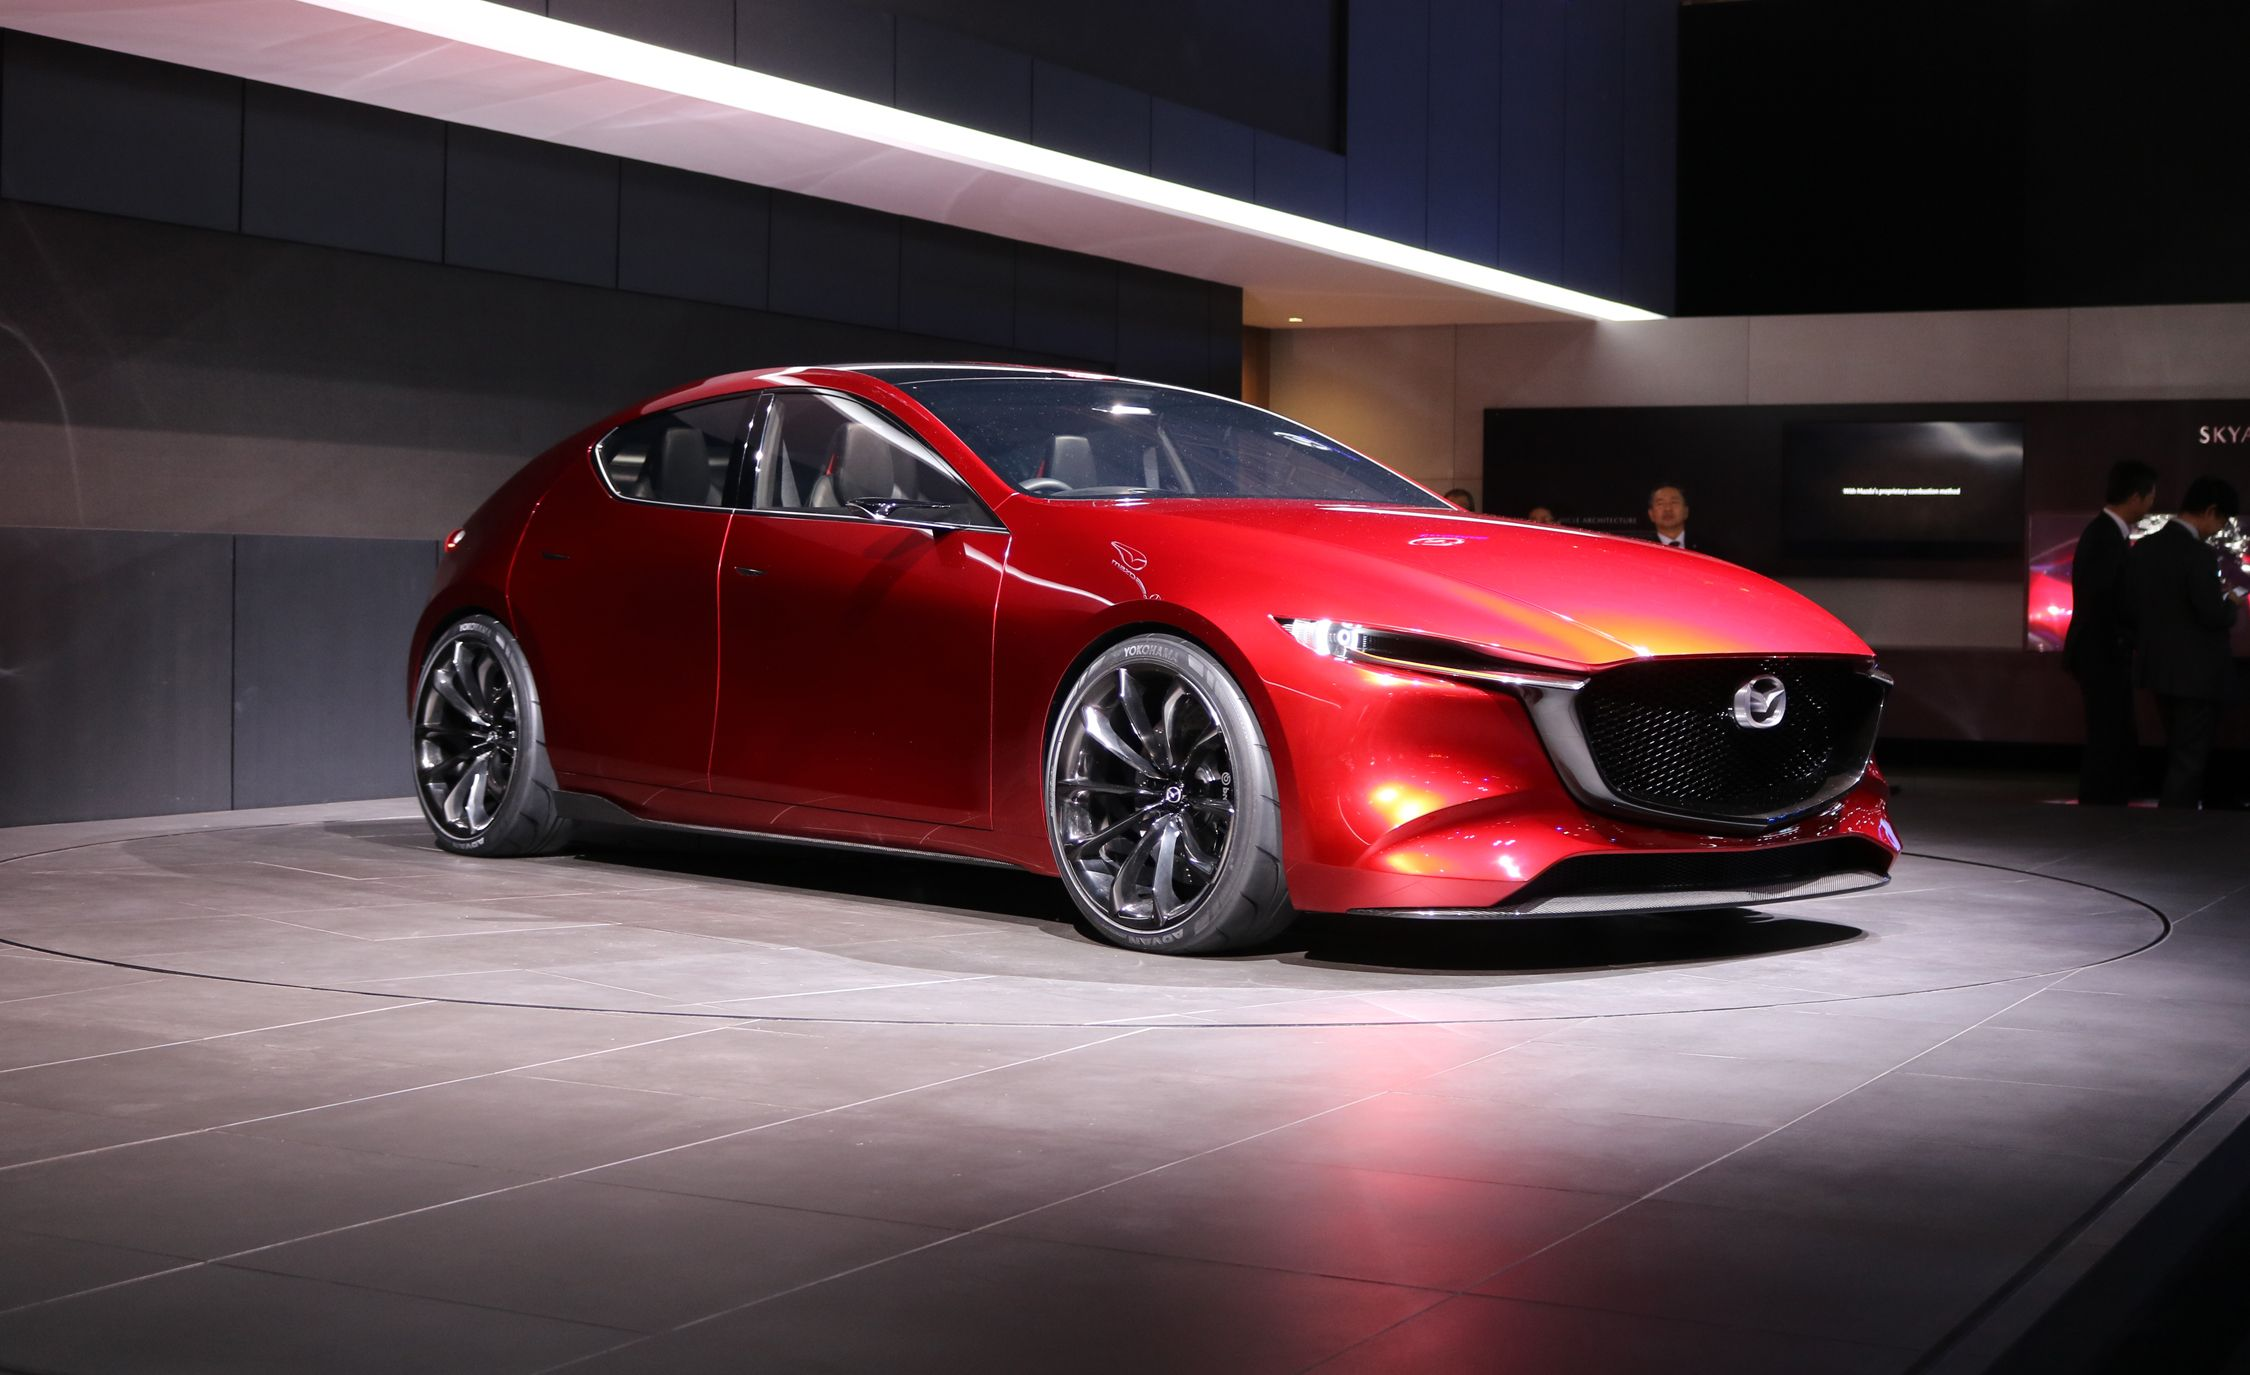 All New Mazda 3 Likely To Debut At Los Angeles Auto Show In November